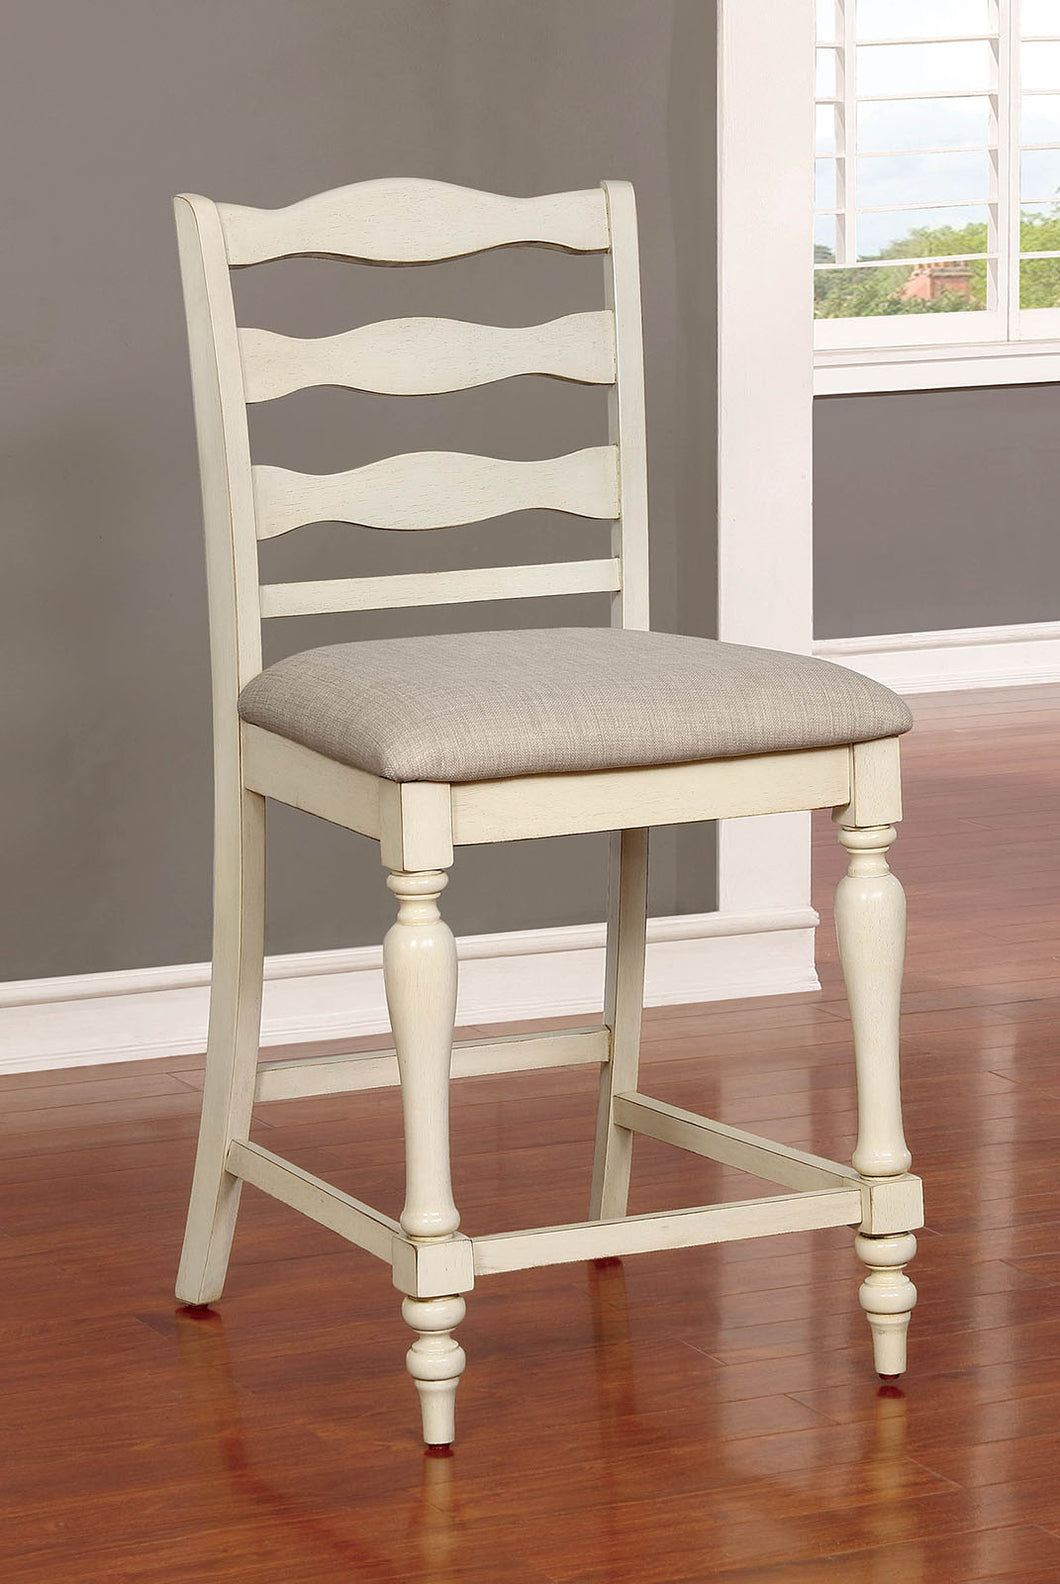 Theresa Antique White/Gray Counter Ht. Chair (2/CTN)